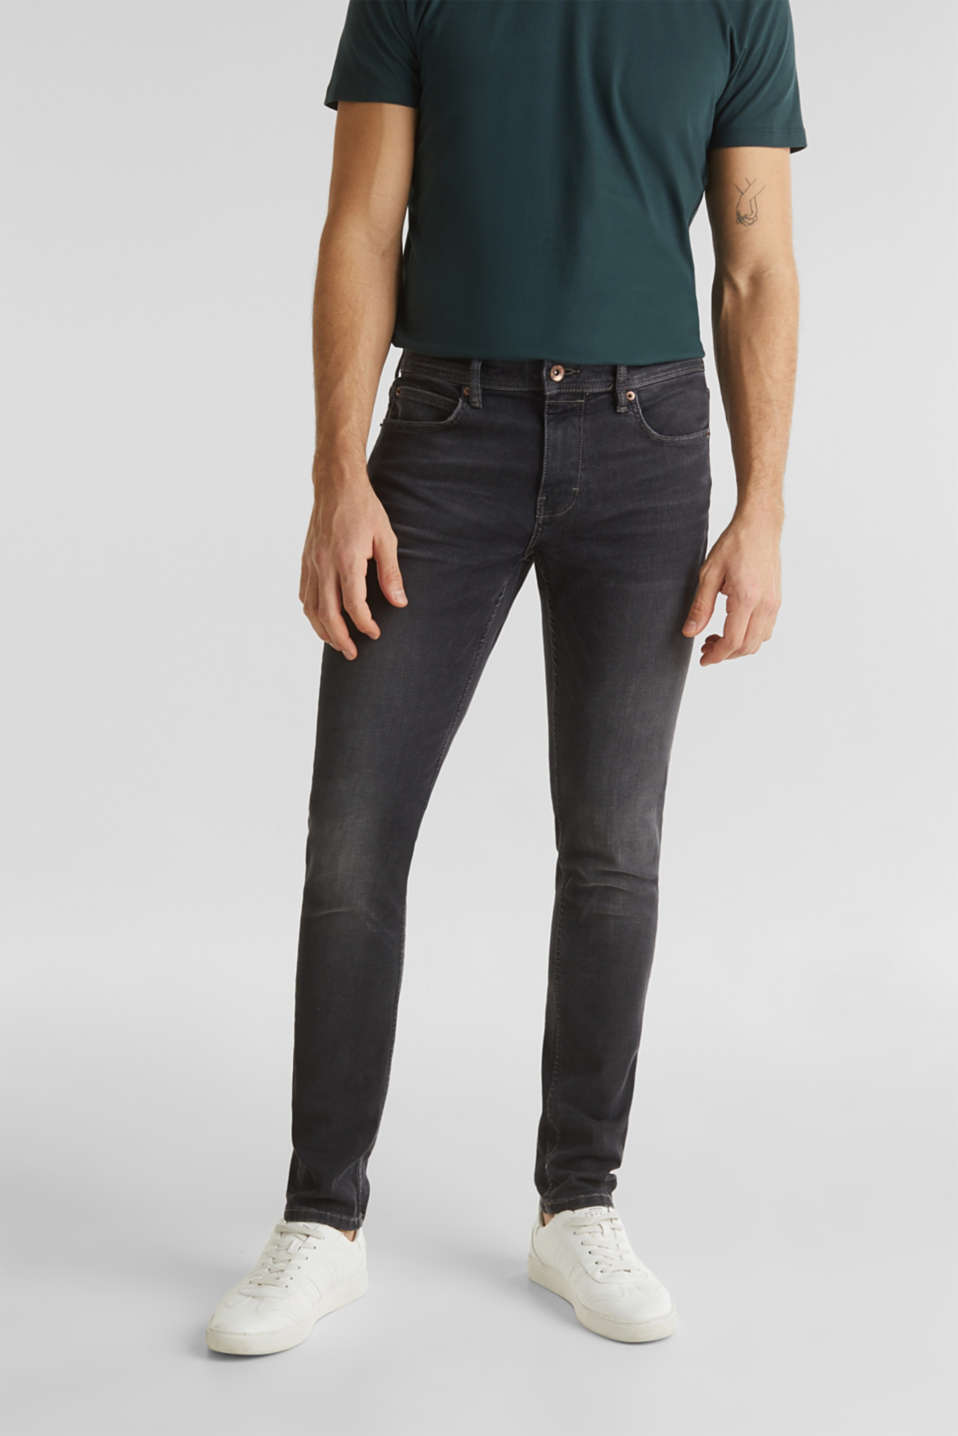 Esprit - Dynamic Denim mit Superstretch-Komfort